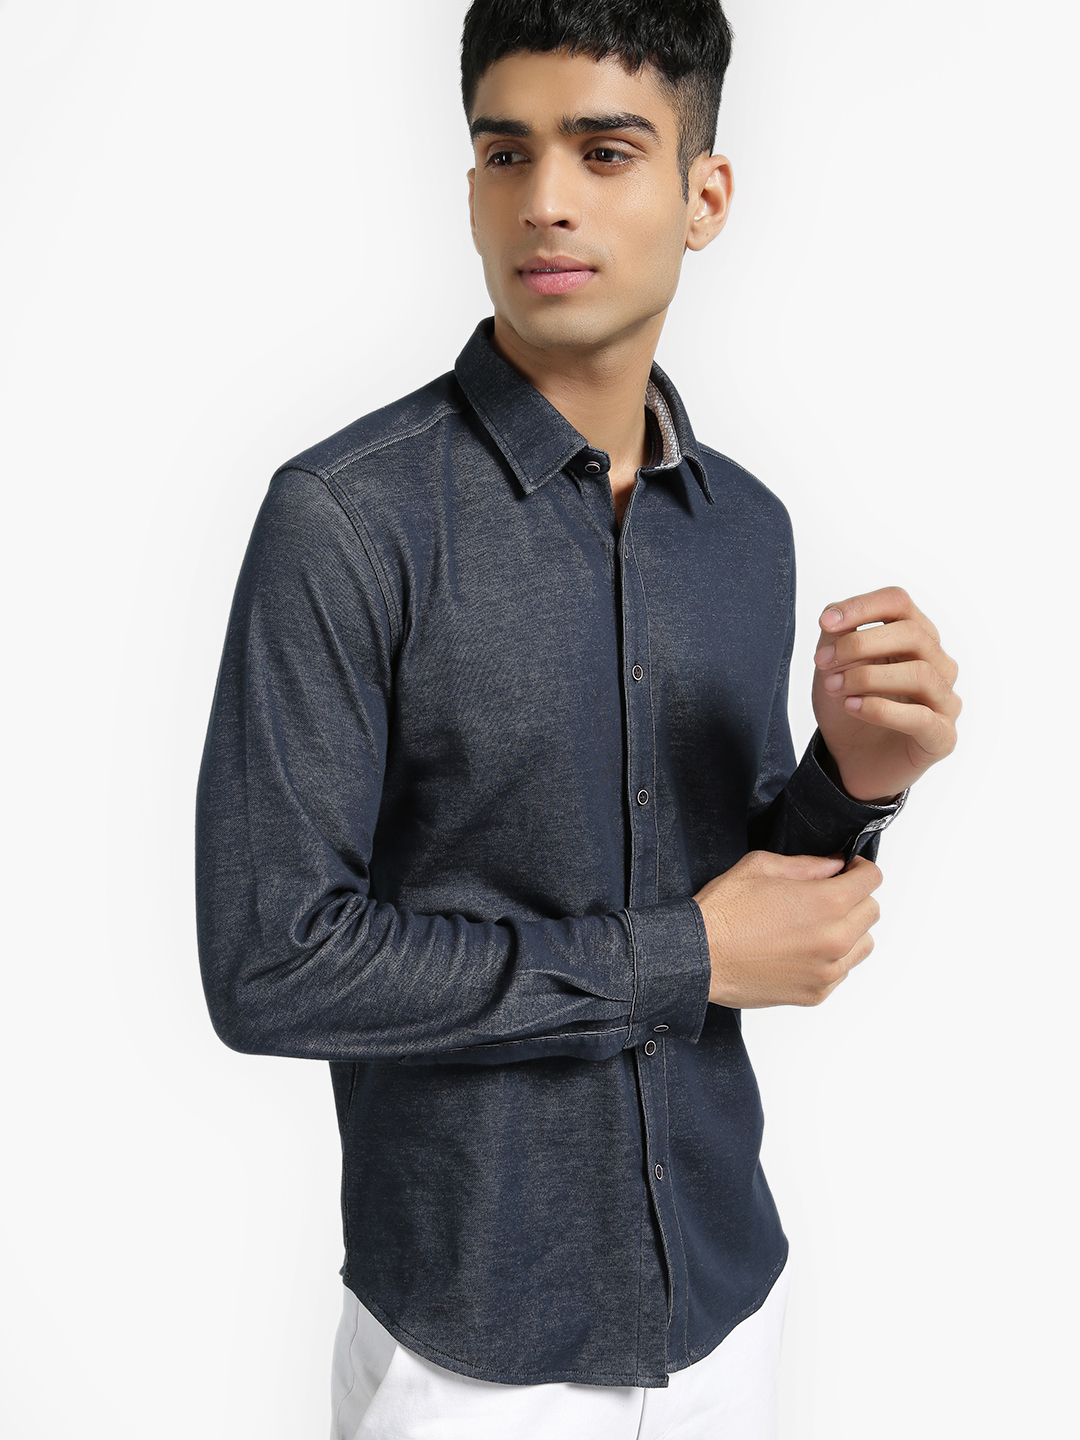 UMM Dark Blue Slim Fit Knitted Shirt 1